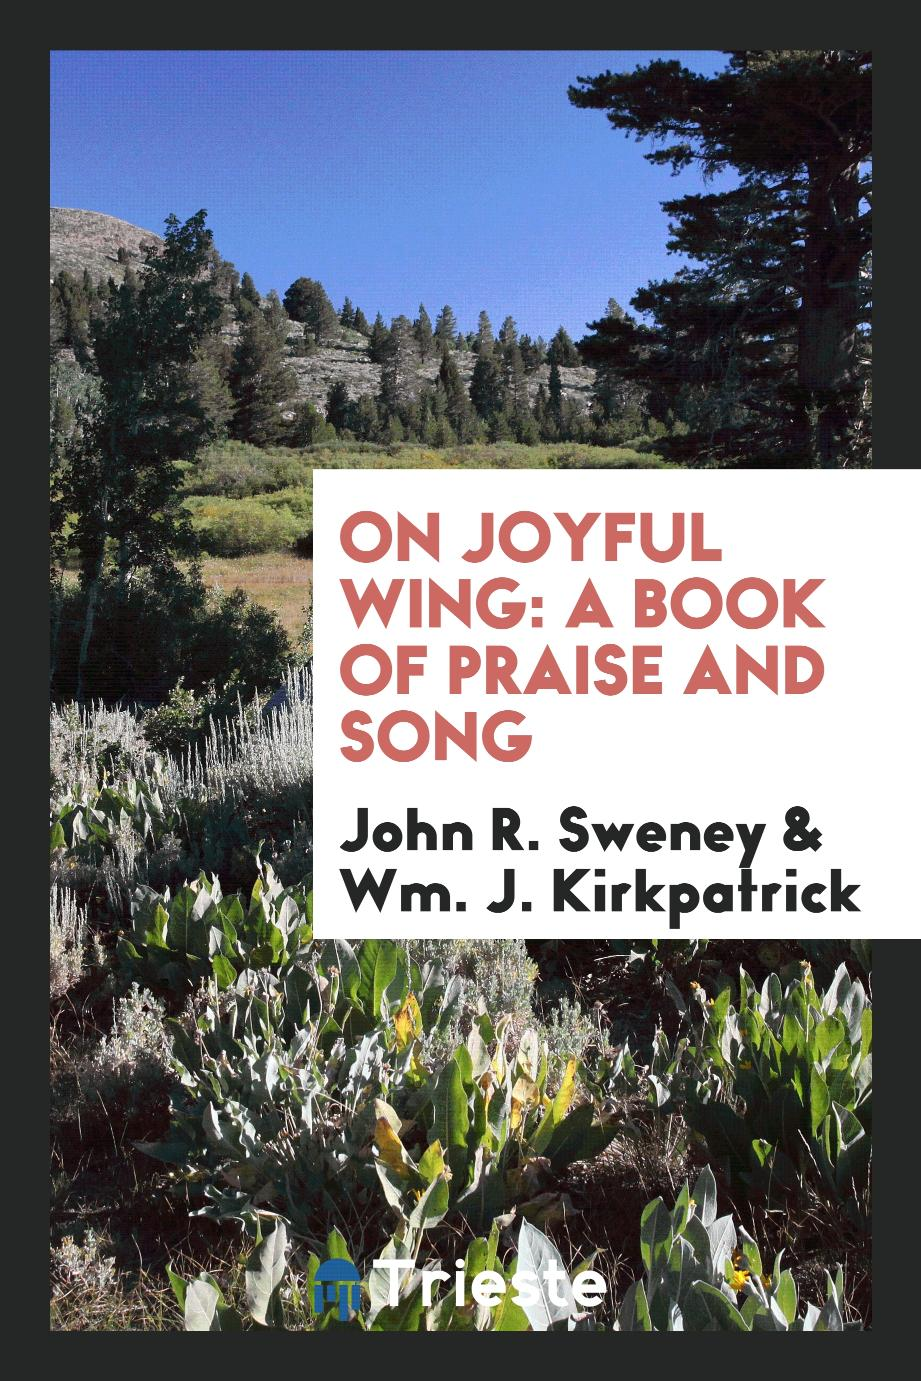 On Joyful Wing: A Book of Praise and Song